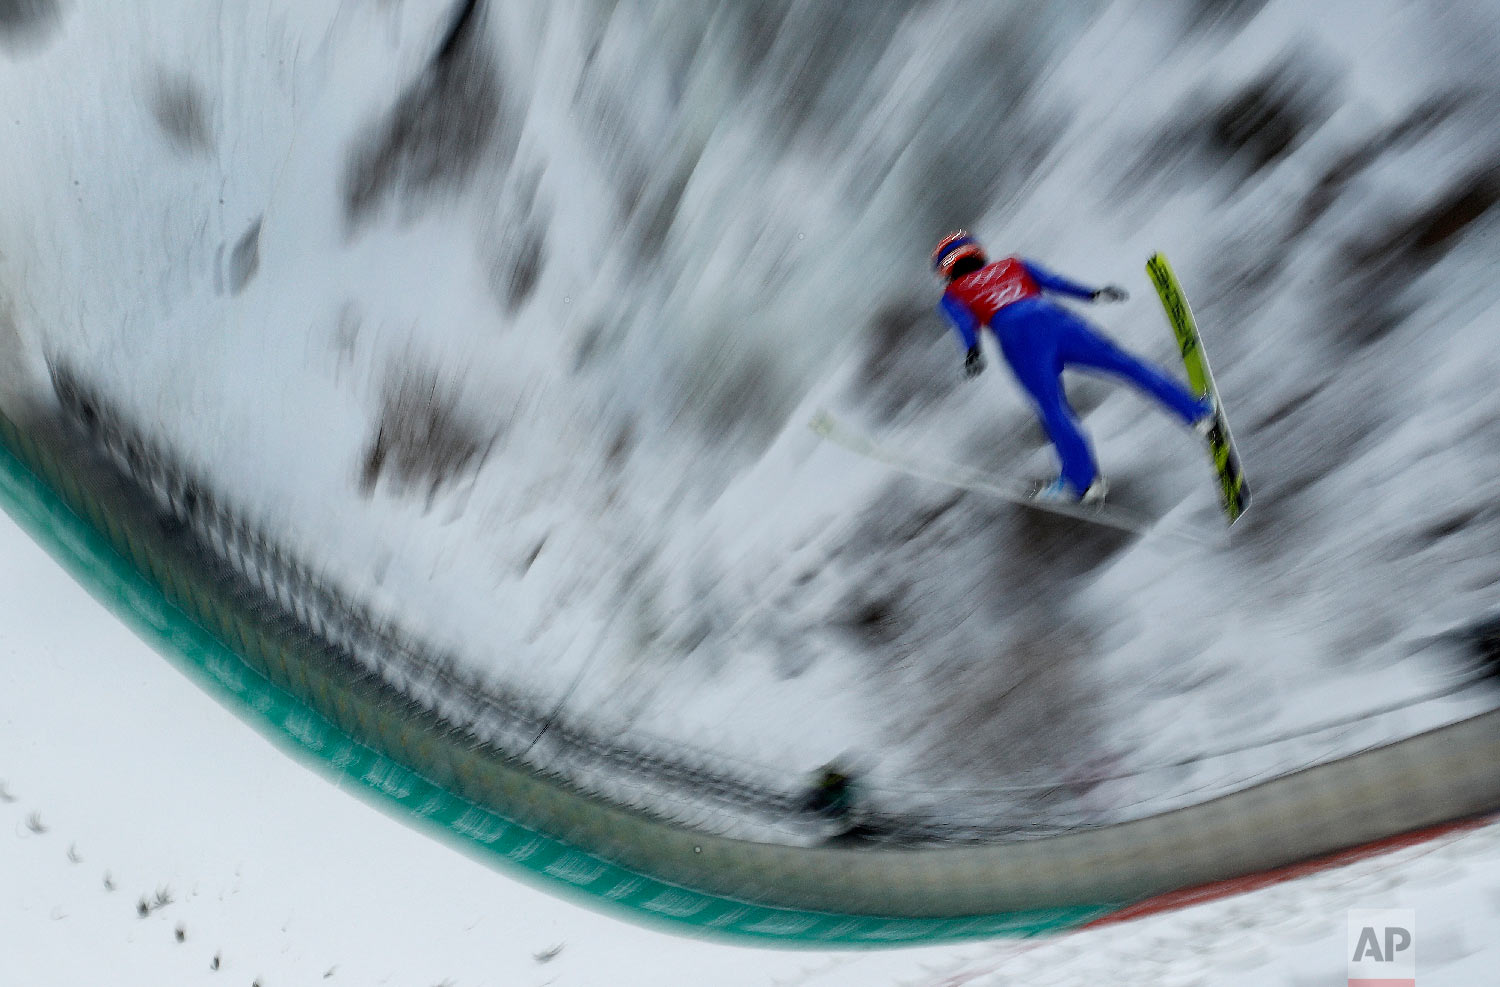 Yuki Ito, of Japan, practices for the women's ski jump competition in the 2018 Winter Olympics at the Alpensia Ski Jumping Center in Pyeongchang, South Korea, Saturday, Feb. 10, 2018. (AP Photo/Charlie Riedel)